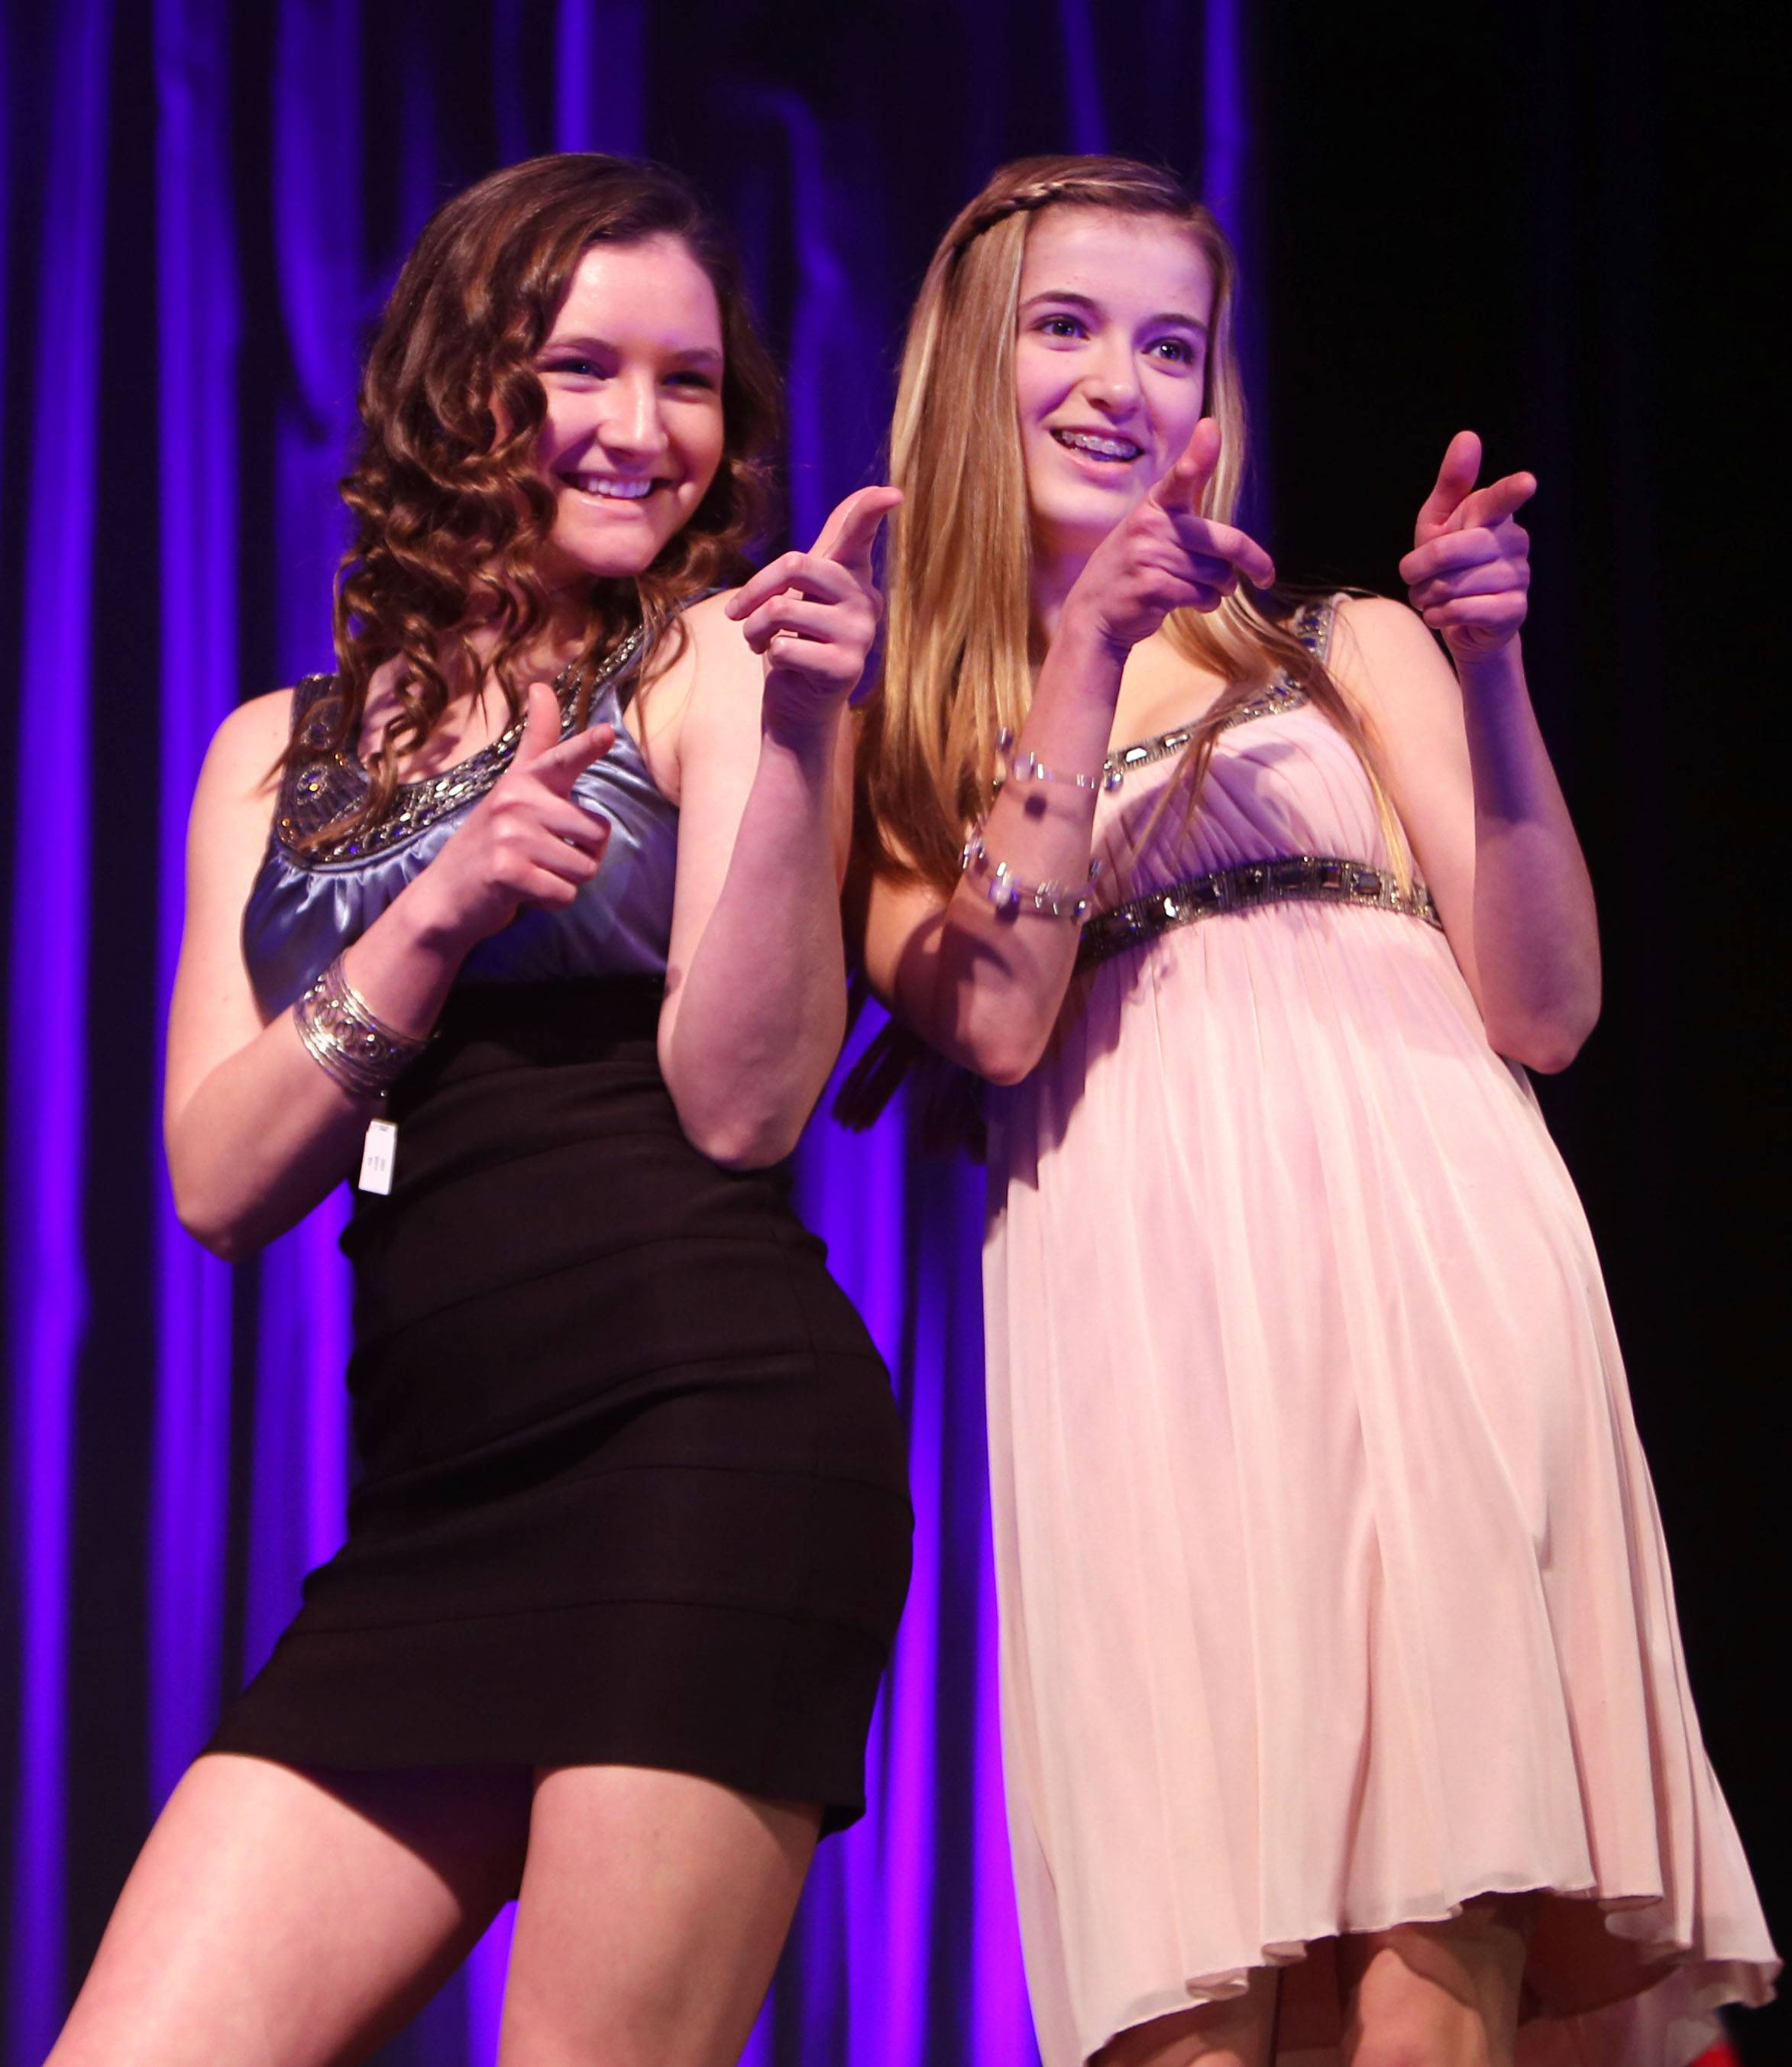 Rosary High School senior Monica Powers, left, and sophomore Shea Vero model dresses during the 4th annual Rosary National Honor Society dress sale and fashion show Sunday in Aurora. The event raises money for scholarships given to incoming freshmen.